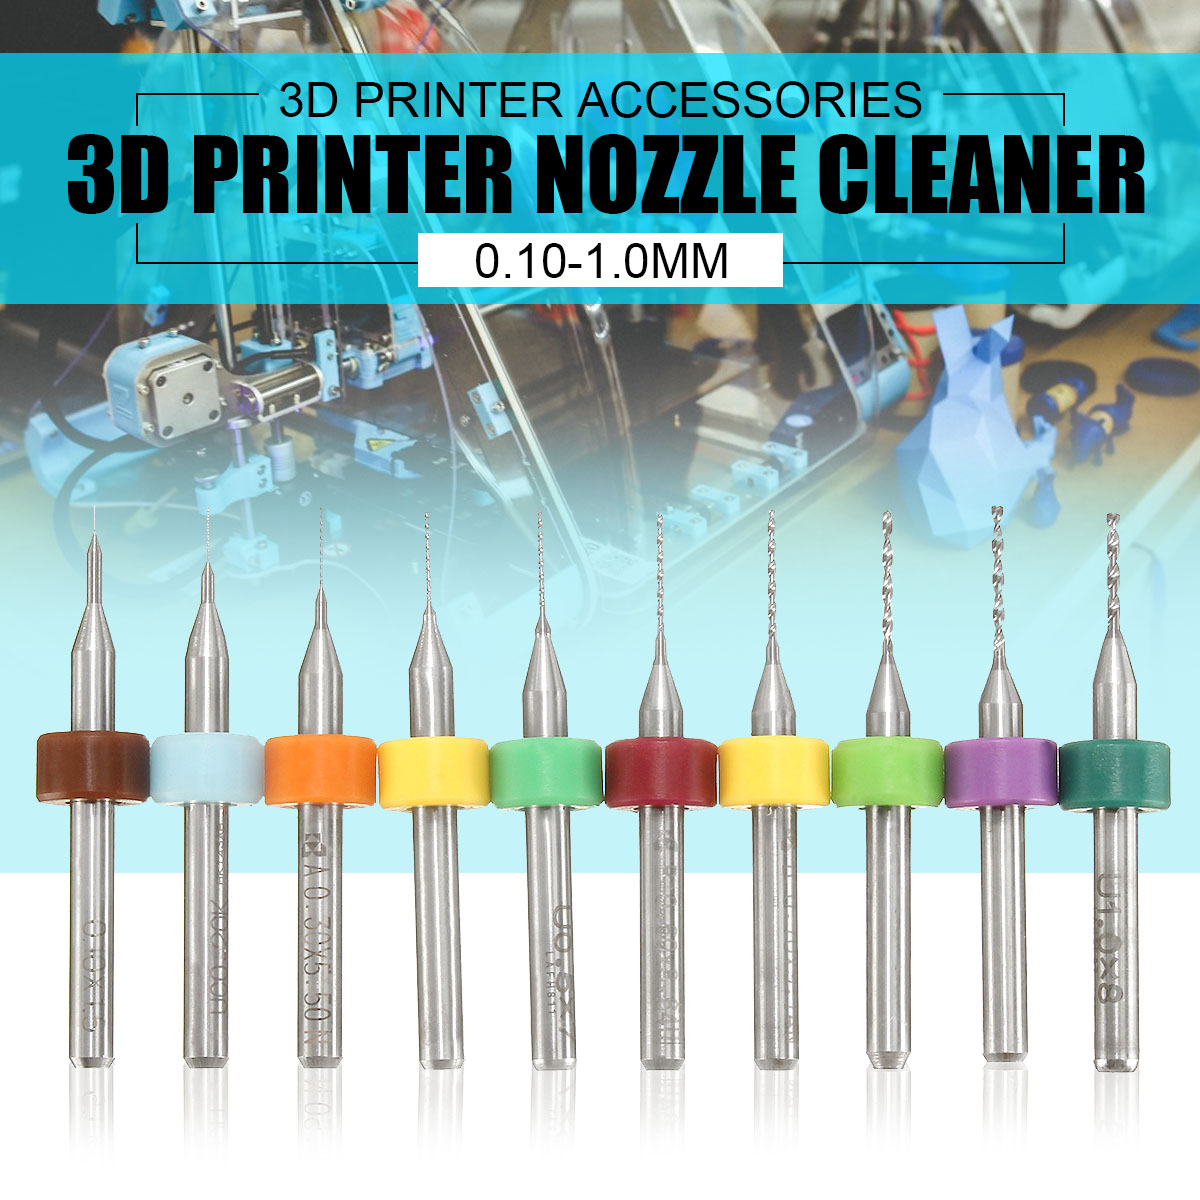 GEEETECH 10pcs/Set 0.1-1.0mm Solid Carbide PCB Drill Bit Nozzle Cleaning Cleaner for Extruder RepRap 3D Printer Accessories